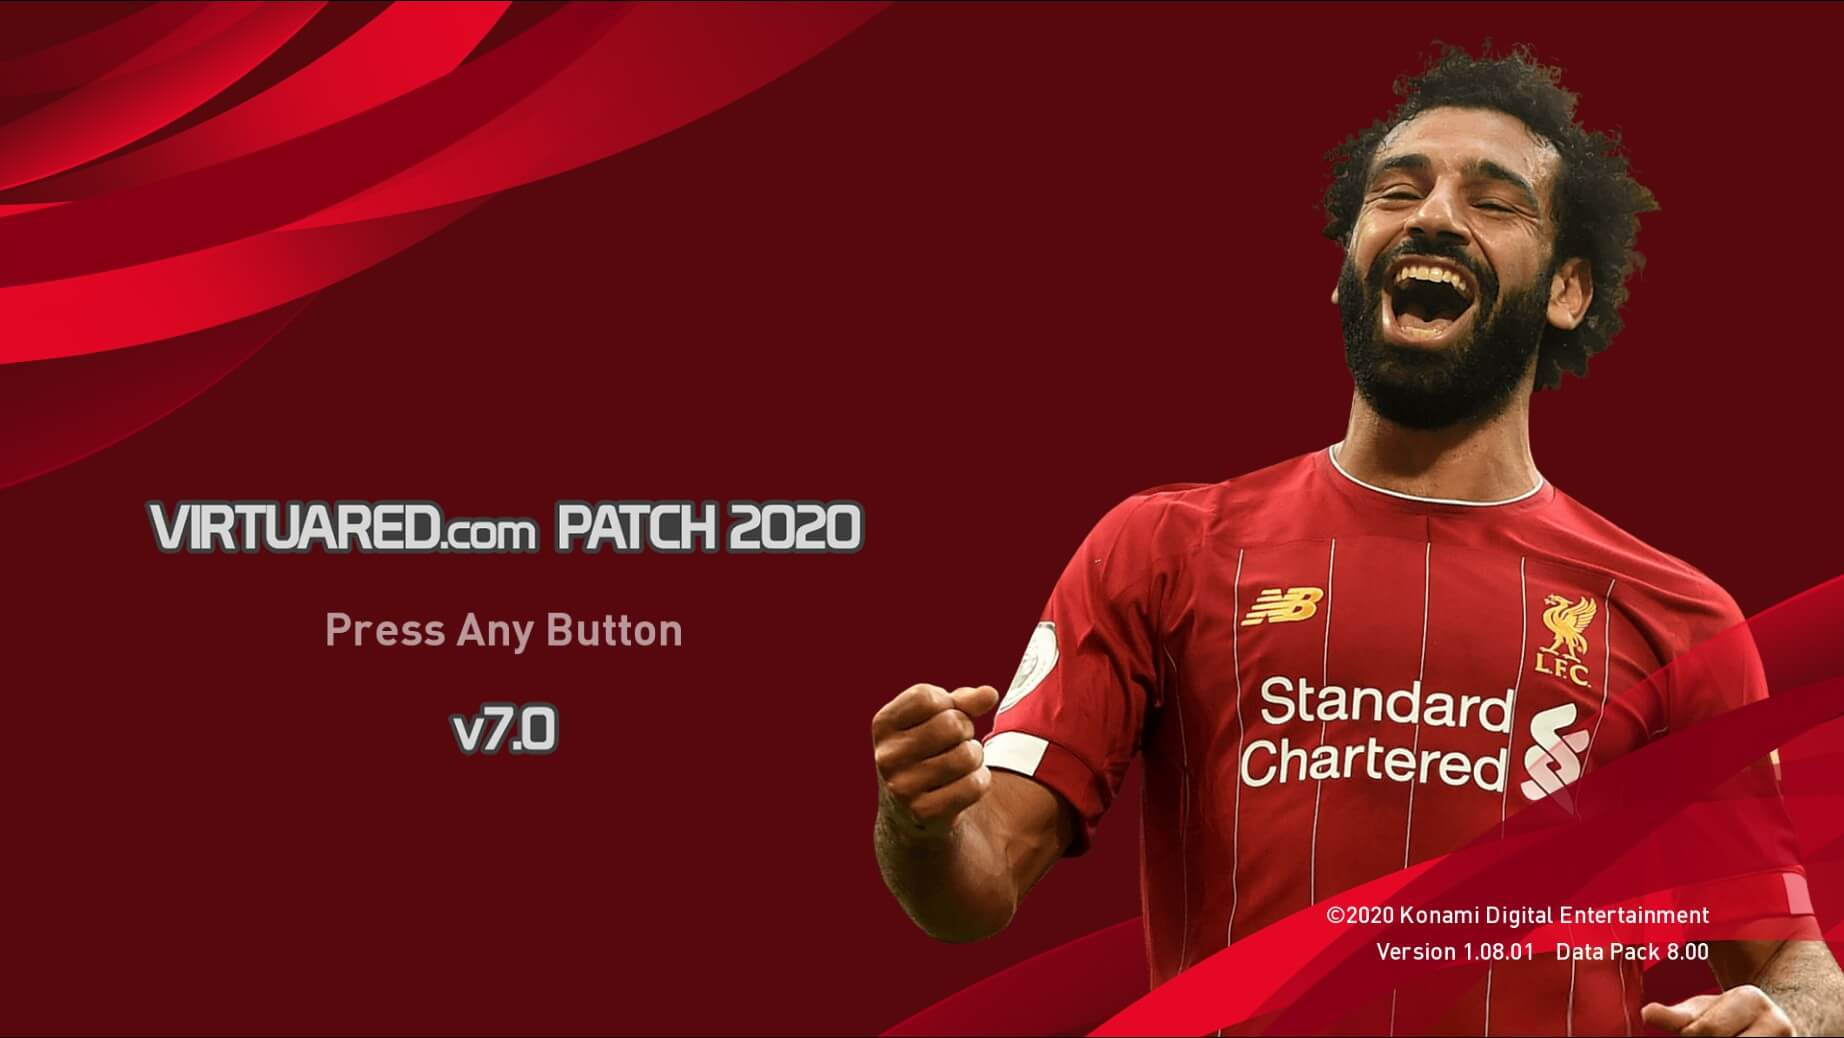 VirtuaRED.com Patch 2020 v7.0 ¡Ya disponible!